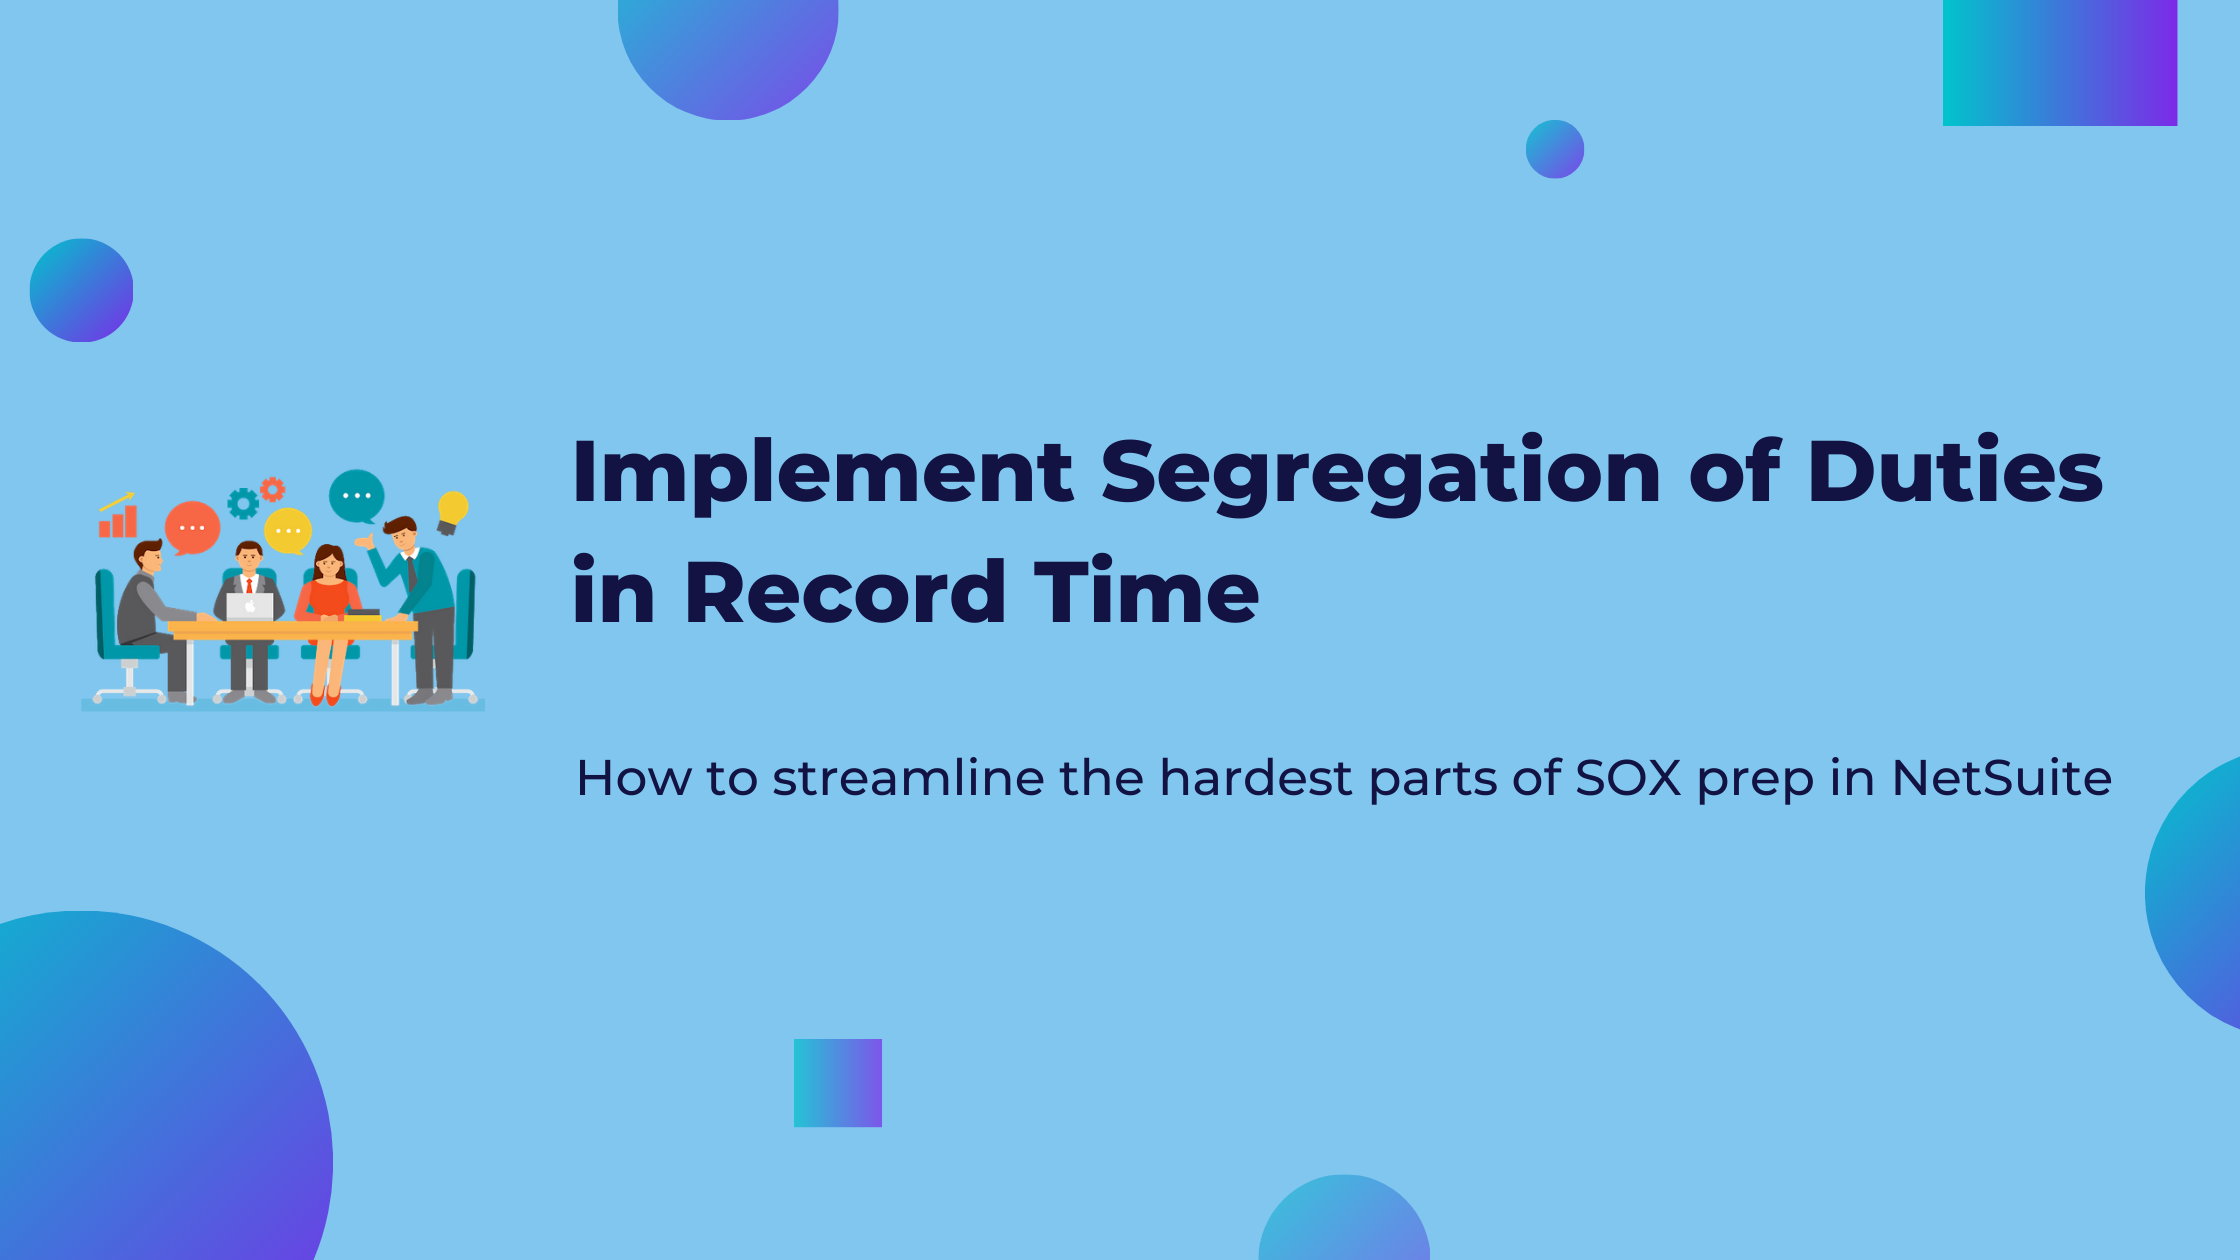 Implement Segregation of Duties in Record Time